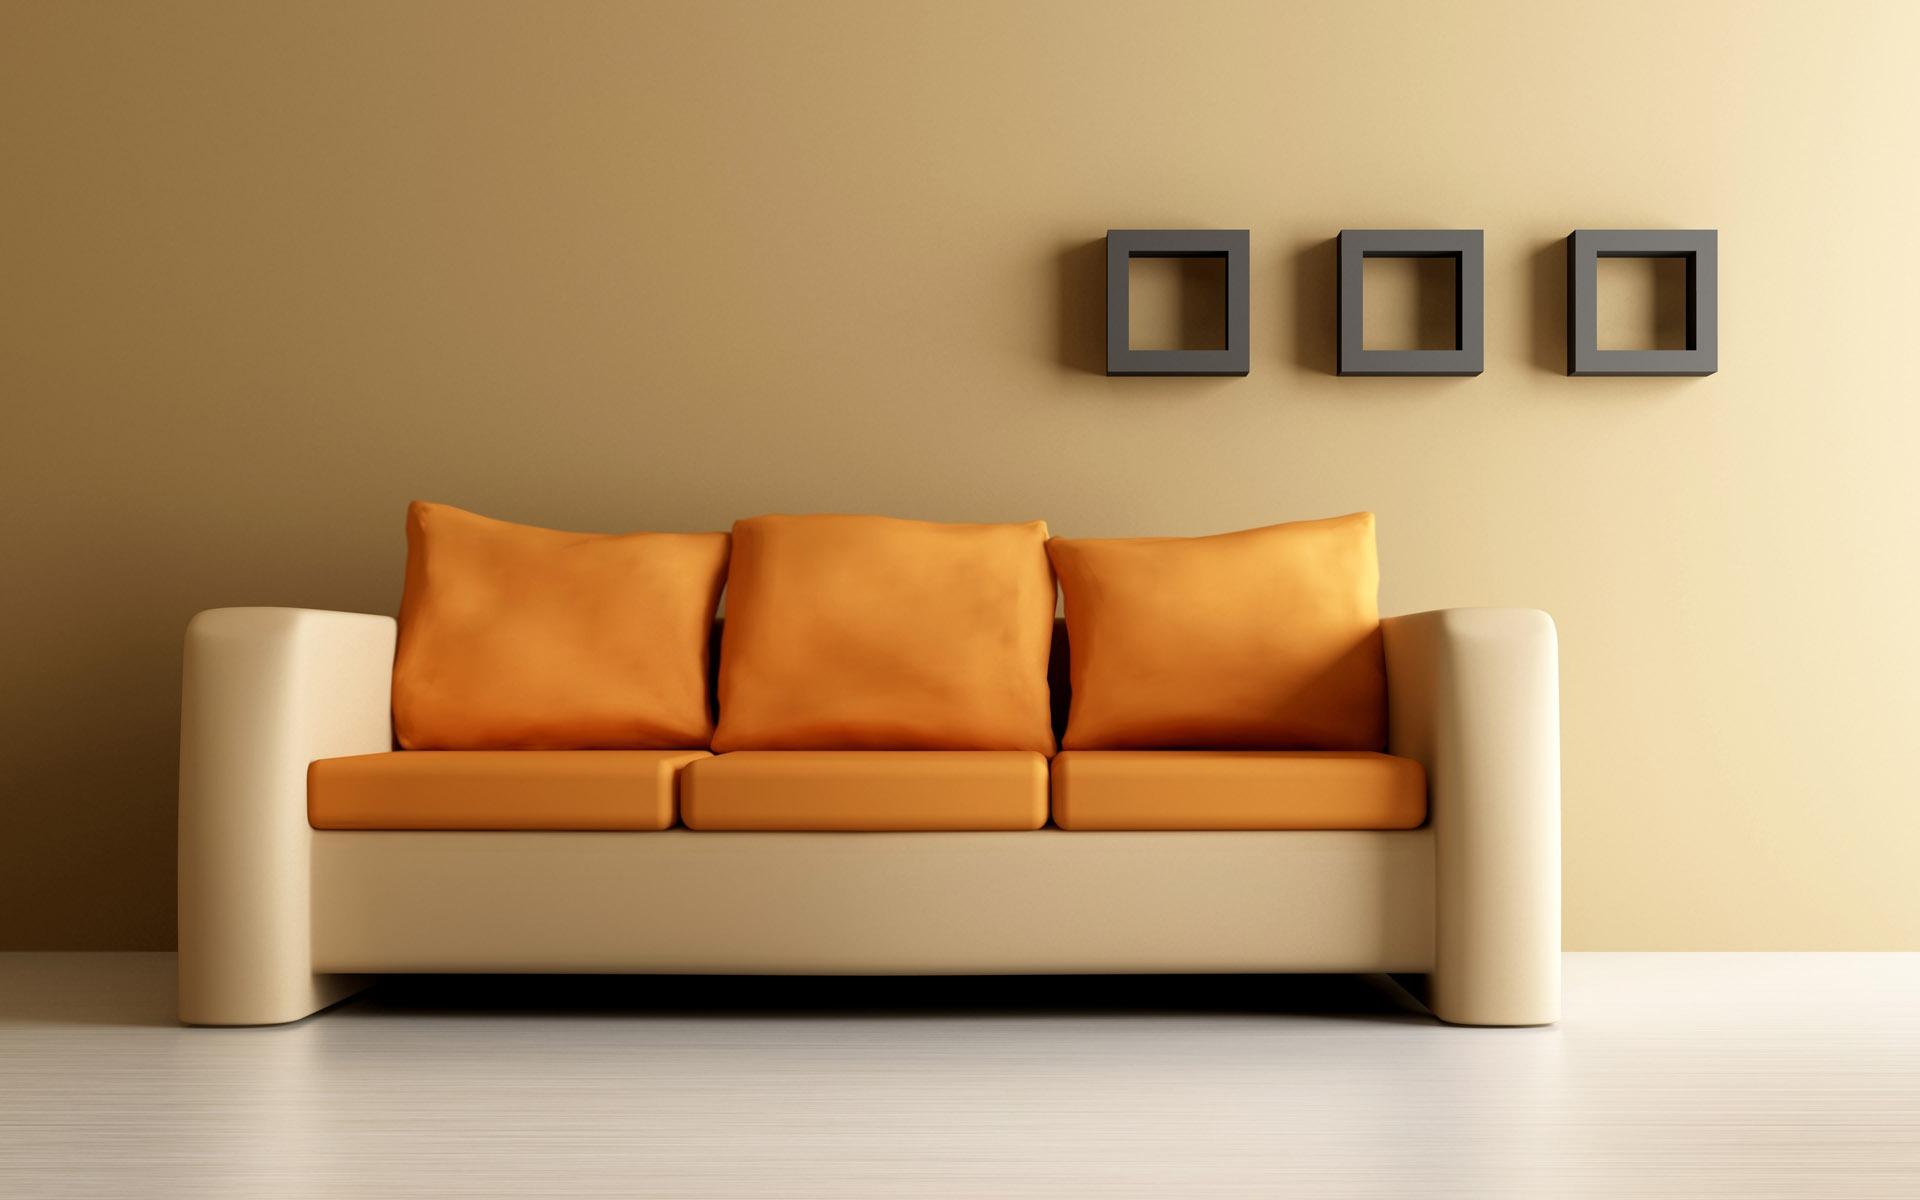 Orange Couch Wallpaper Interior Design Other Wallpapers in